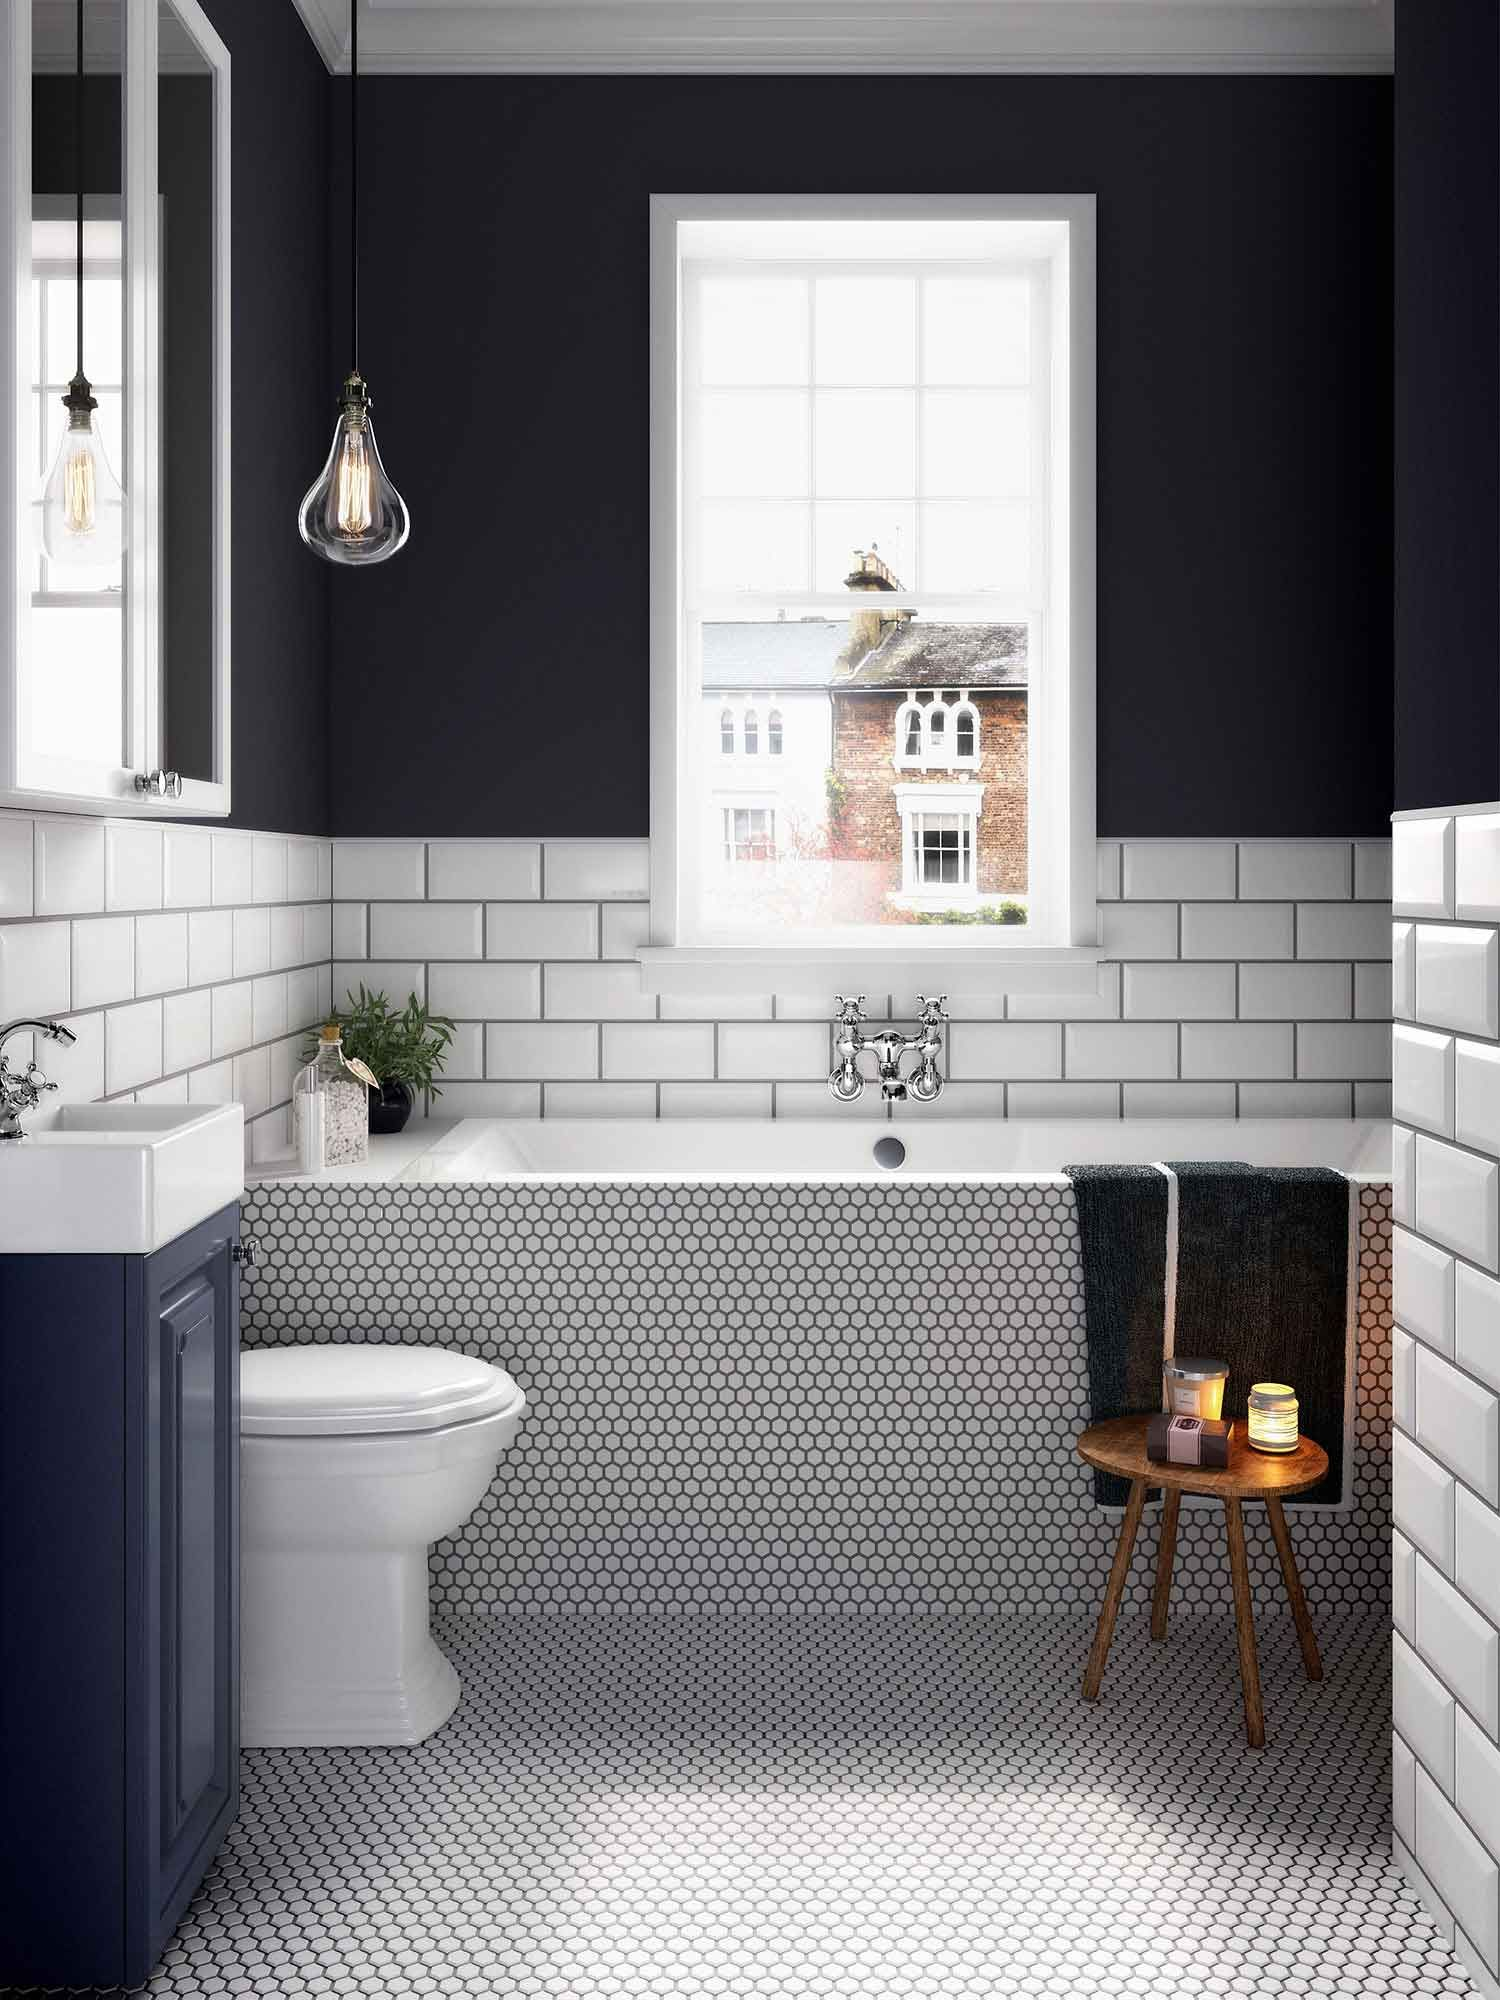 A well decorated bathroom can do wonders to an interior